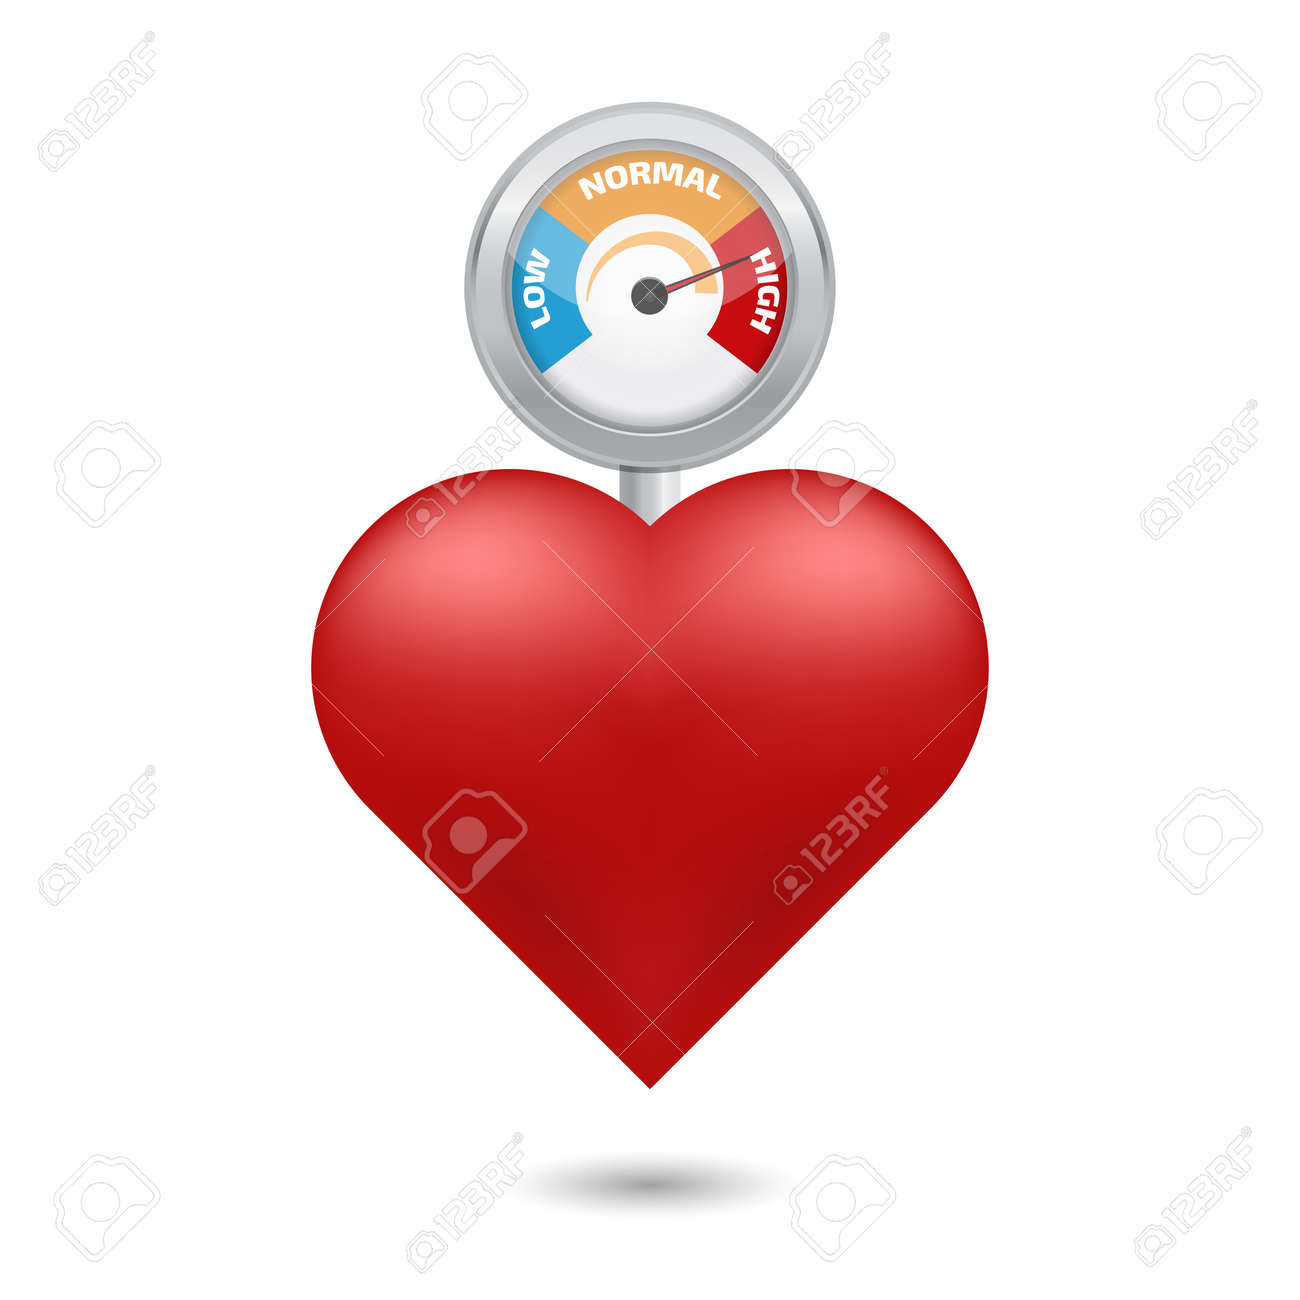 High blood pressure concept vector - 52477334